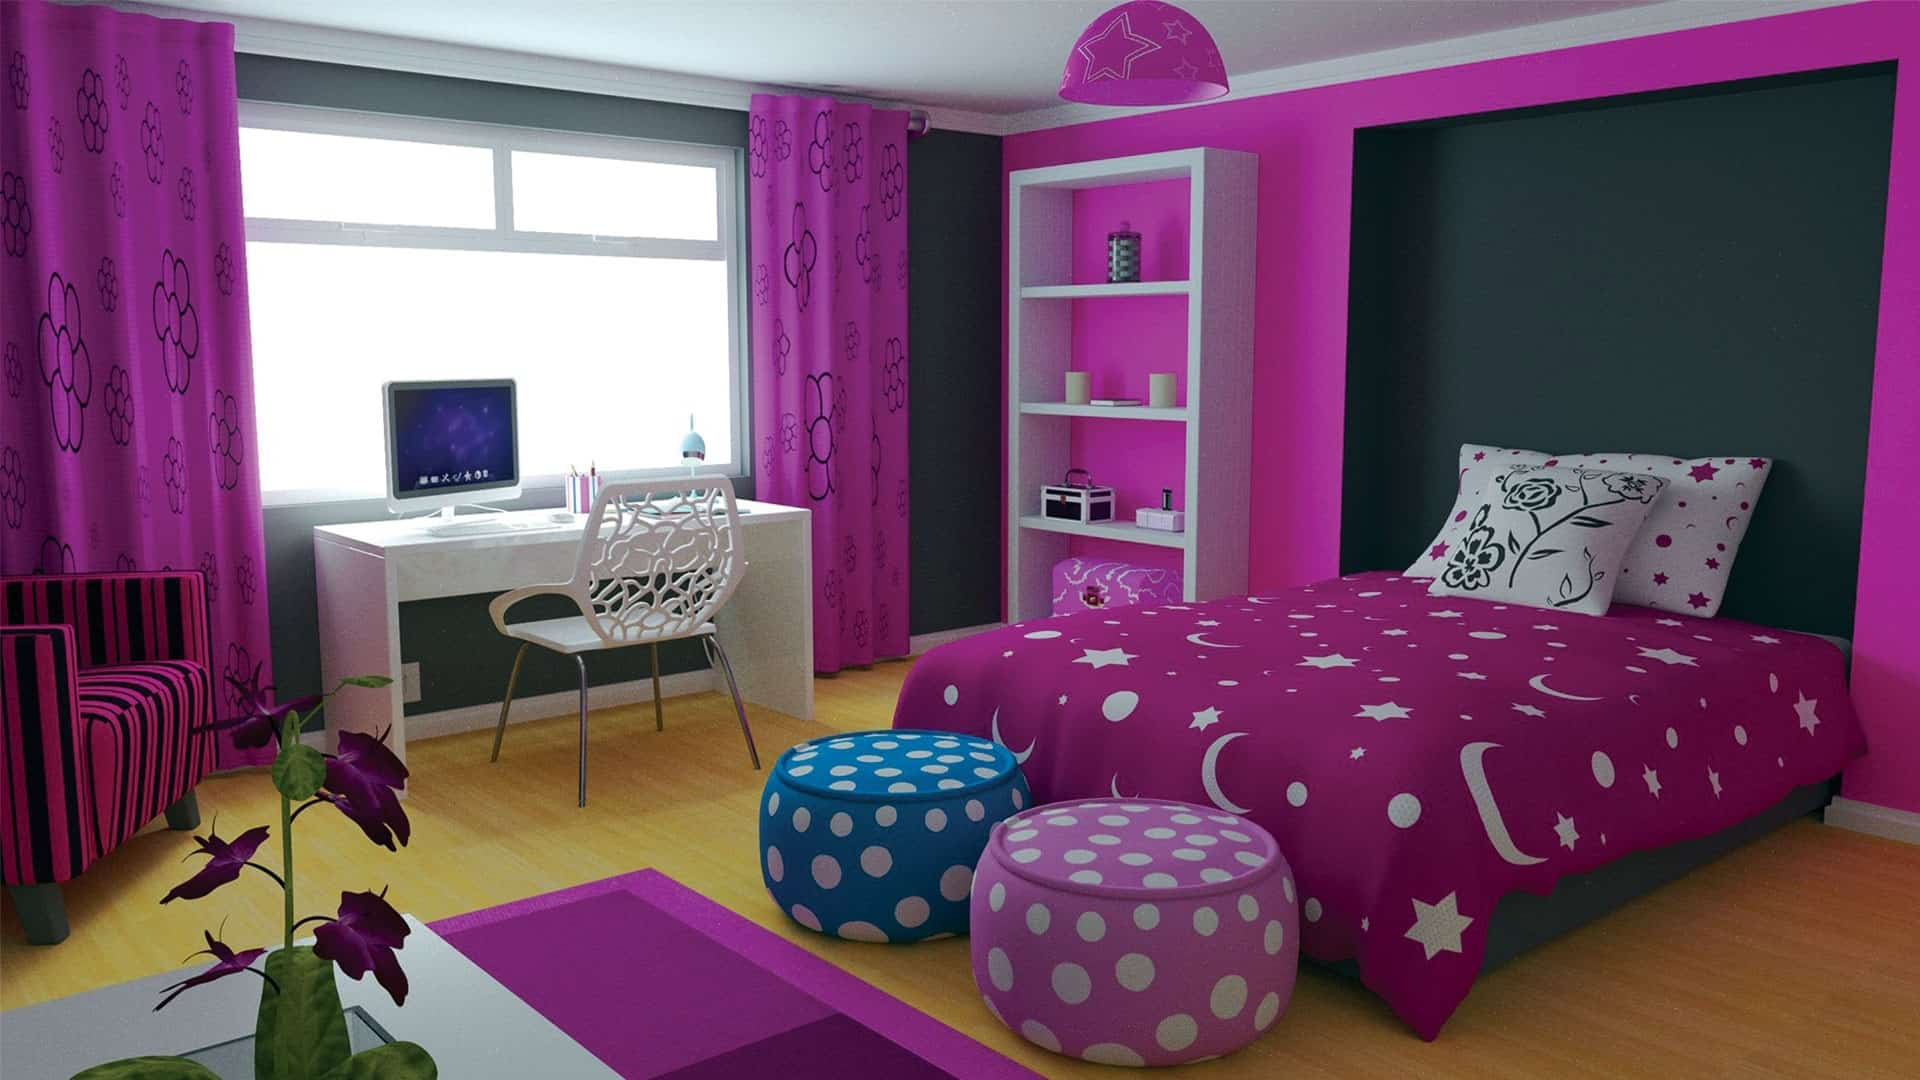 Home decor trends 2017 purple teen room for Purple and white bedroom designs